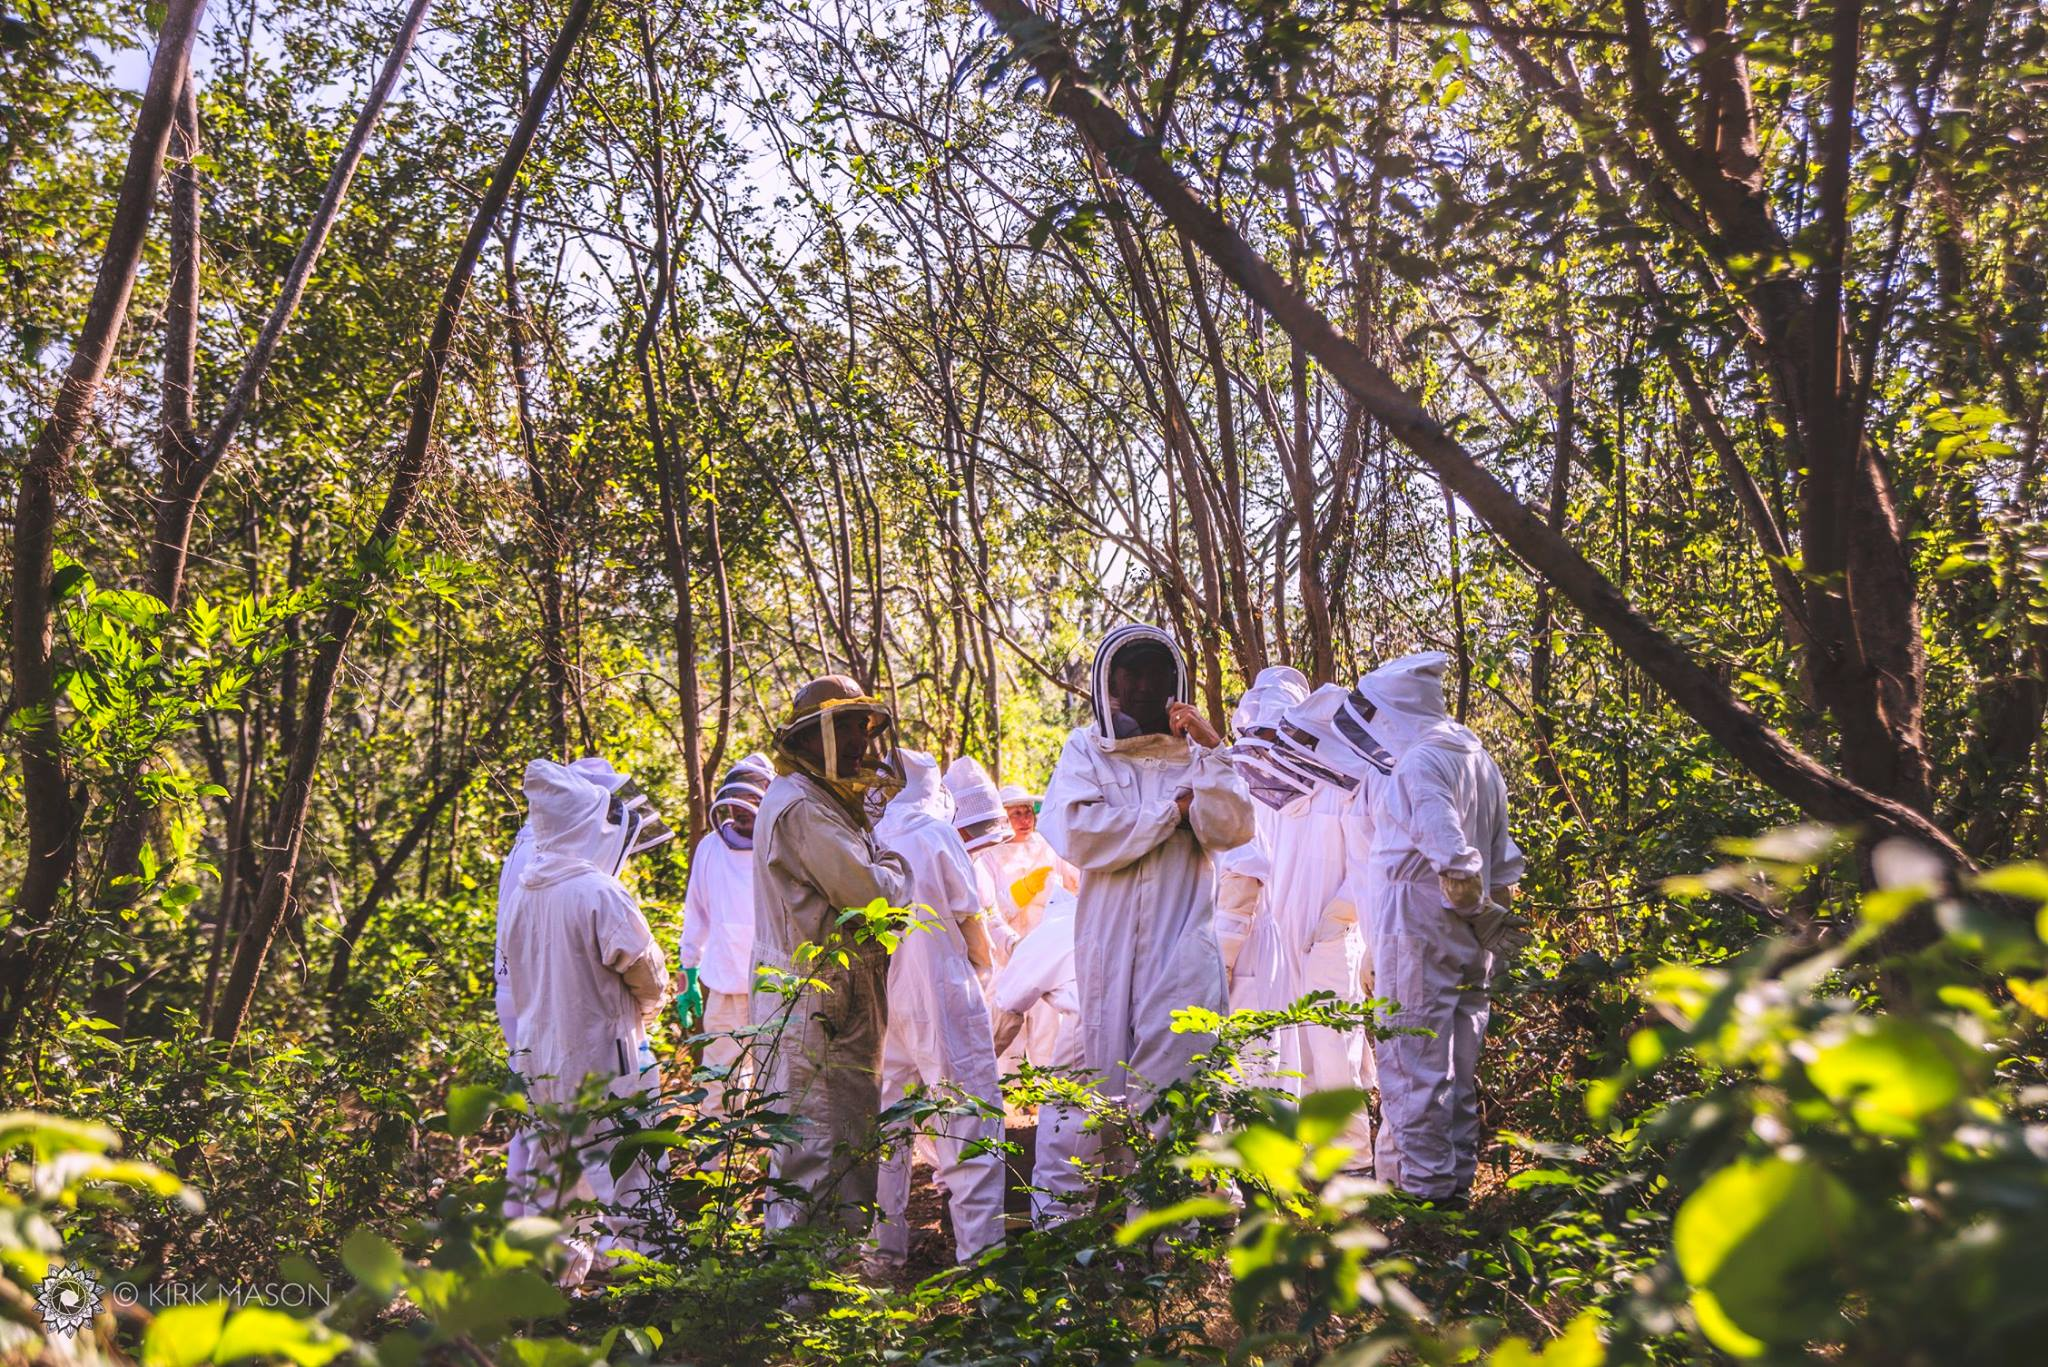 A group of American/Canadian beekeepers exploring an Africanized Honeybee colony on a coffee plantation near Chocoyero Nature Reserve in Masaya, Nicaragua. I was a photographer for Nicabeja Proyecto (Nicaragua Bee Project), a farmer-to-farmer style program in which American and Canadian beekeepers spend two weeks traveling to a dozen farms/co-ops/beekeeping operations to learn about keeping Africanized Honeybees (killer bees), while also imparting best management practices from research institutions in the US. Young Nicaraguan beekeepers participate in the trip as well, obtaining mentorship from experienced beekeepers and making plenty of new friends in the process :)